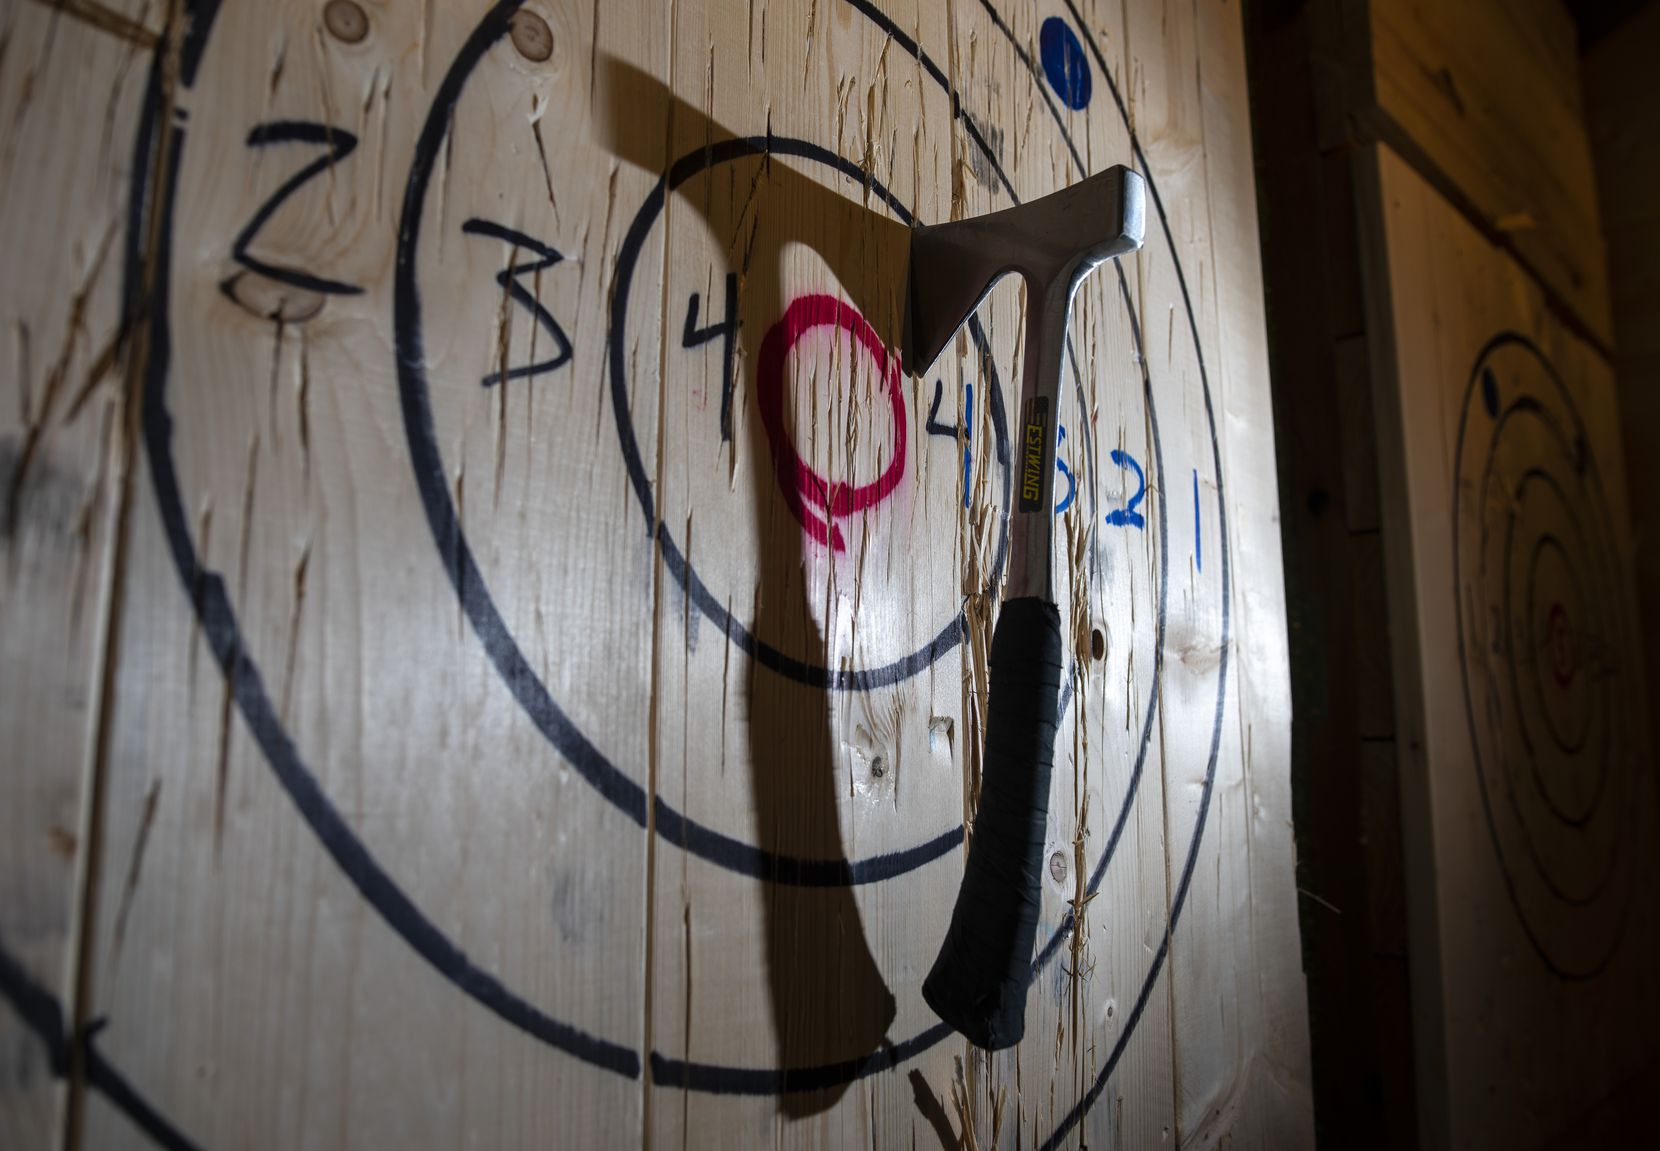 Ax throwers aim at a target, like this.